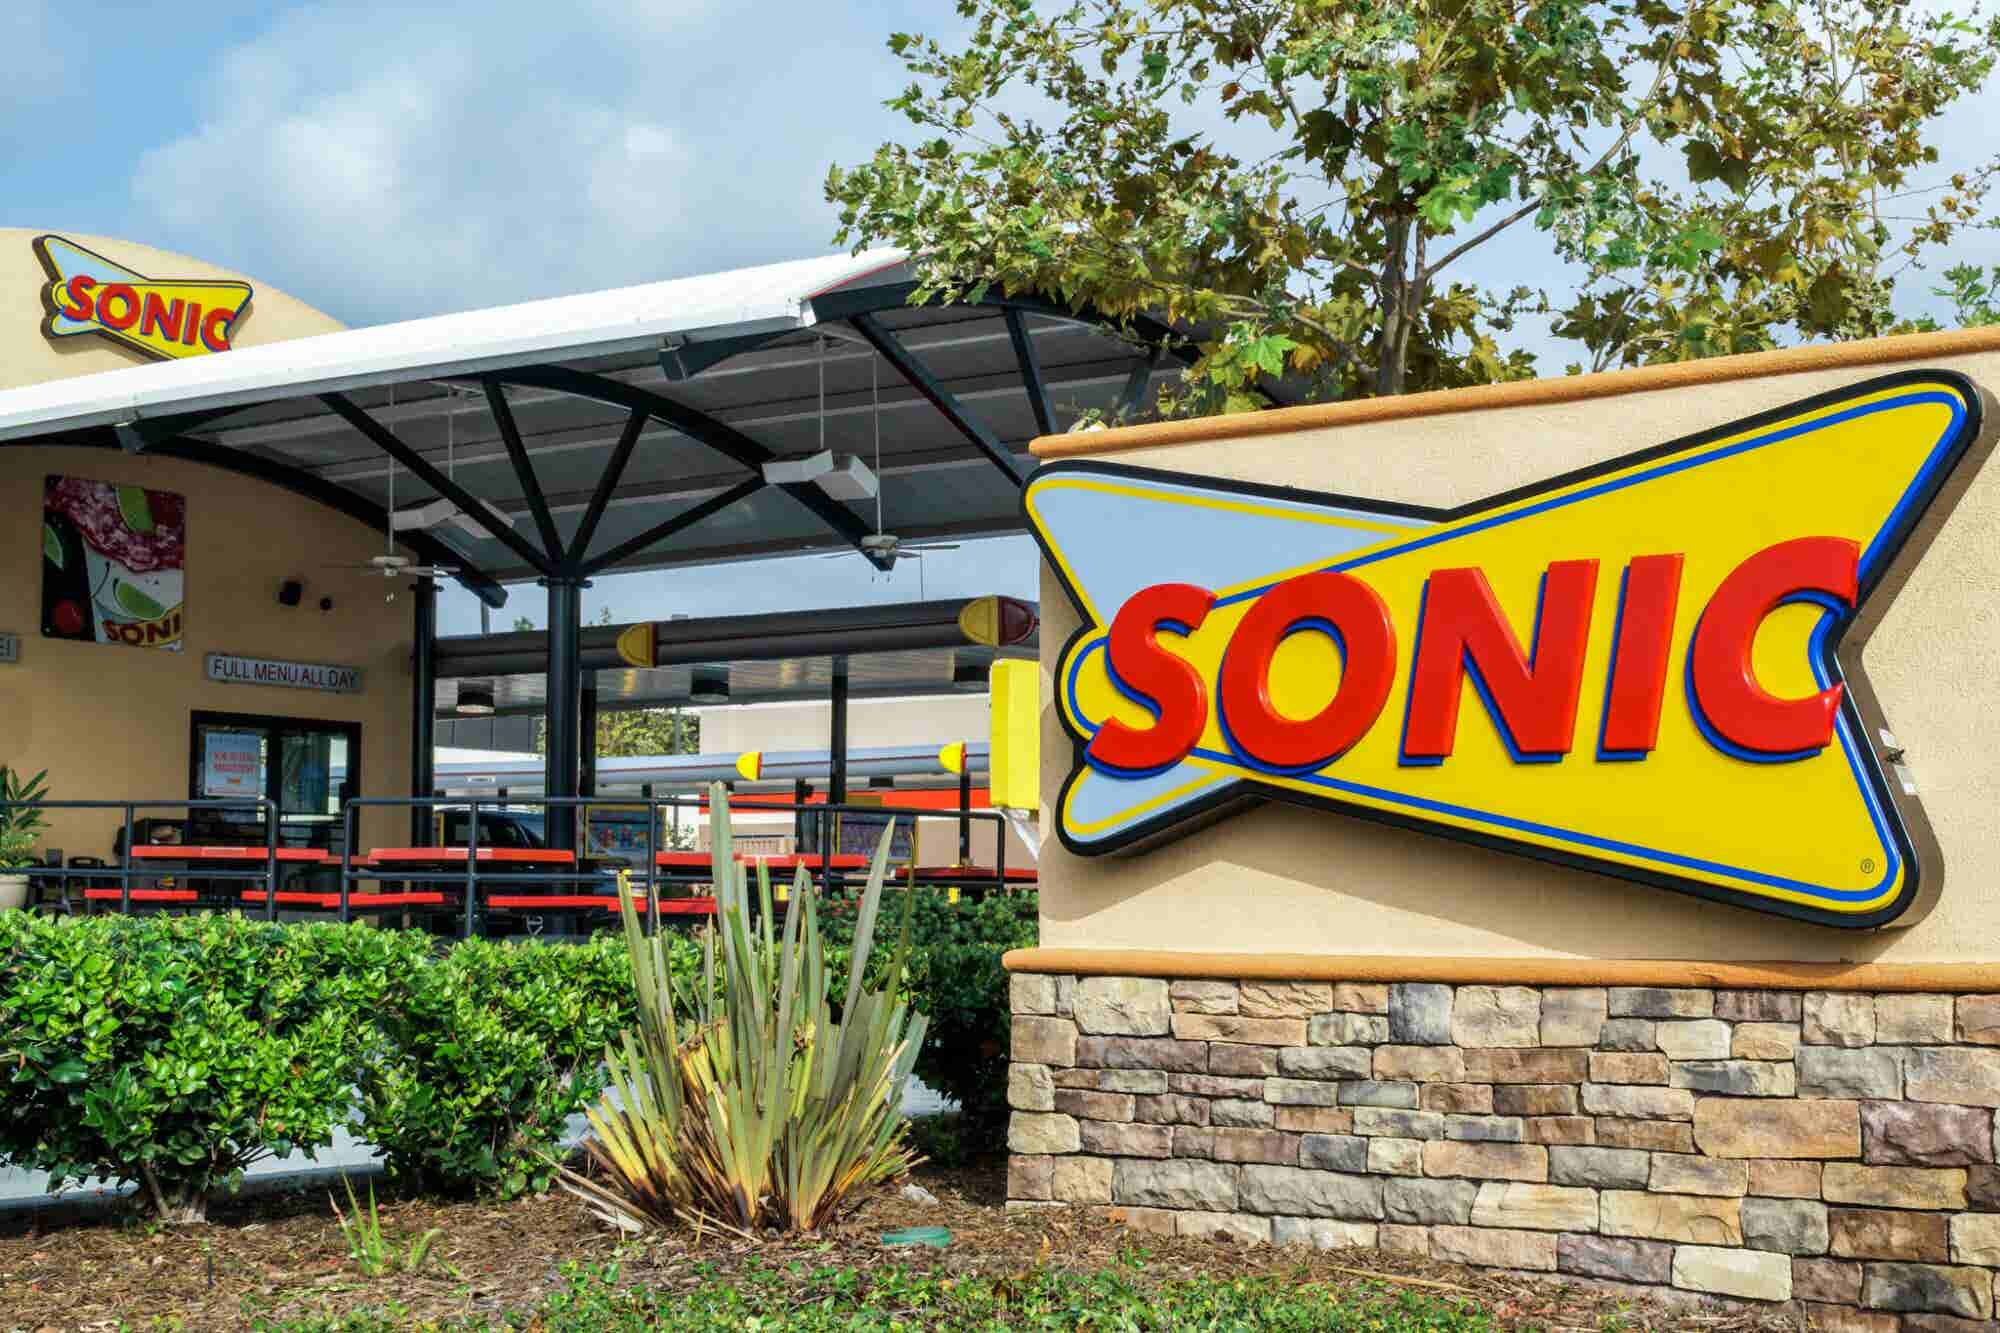 Sonic Sold to Arby's and Buffalo Wild Wings for $2.3 Billion